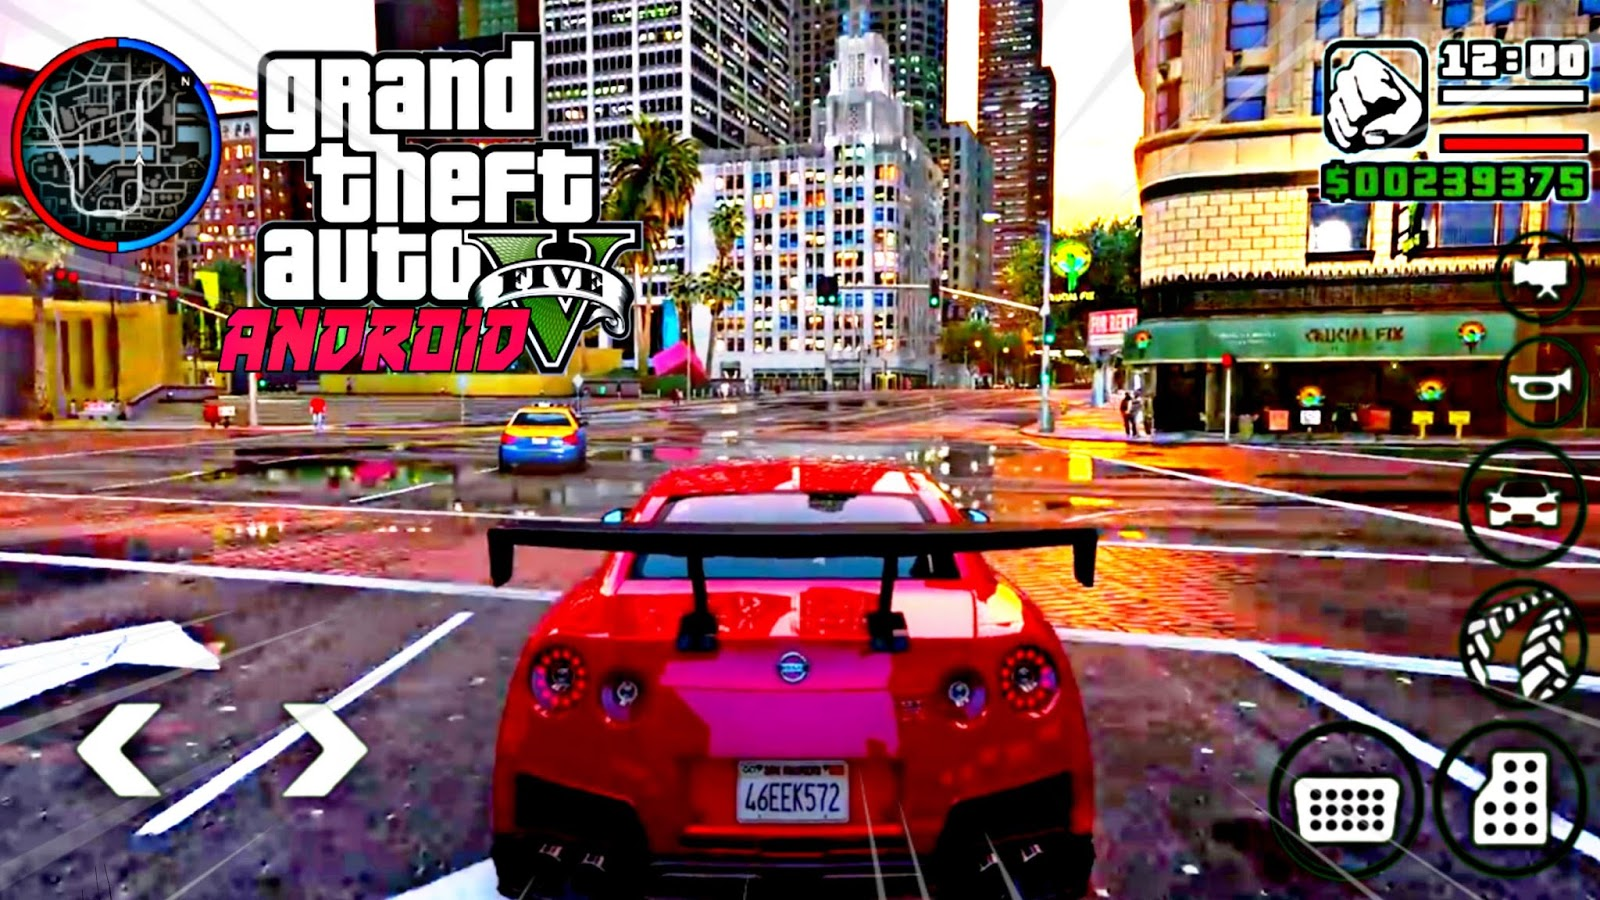 85MB] Download GTA 5 Beta For All Android Devices🔥🔥🔥 - DK